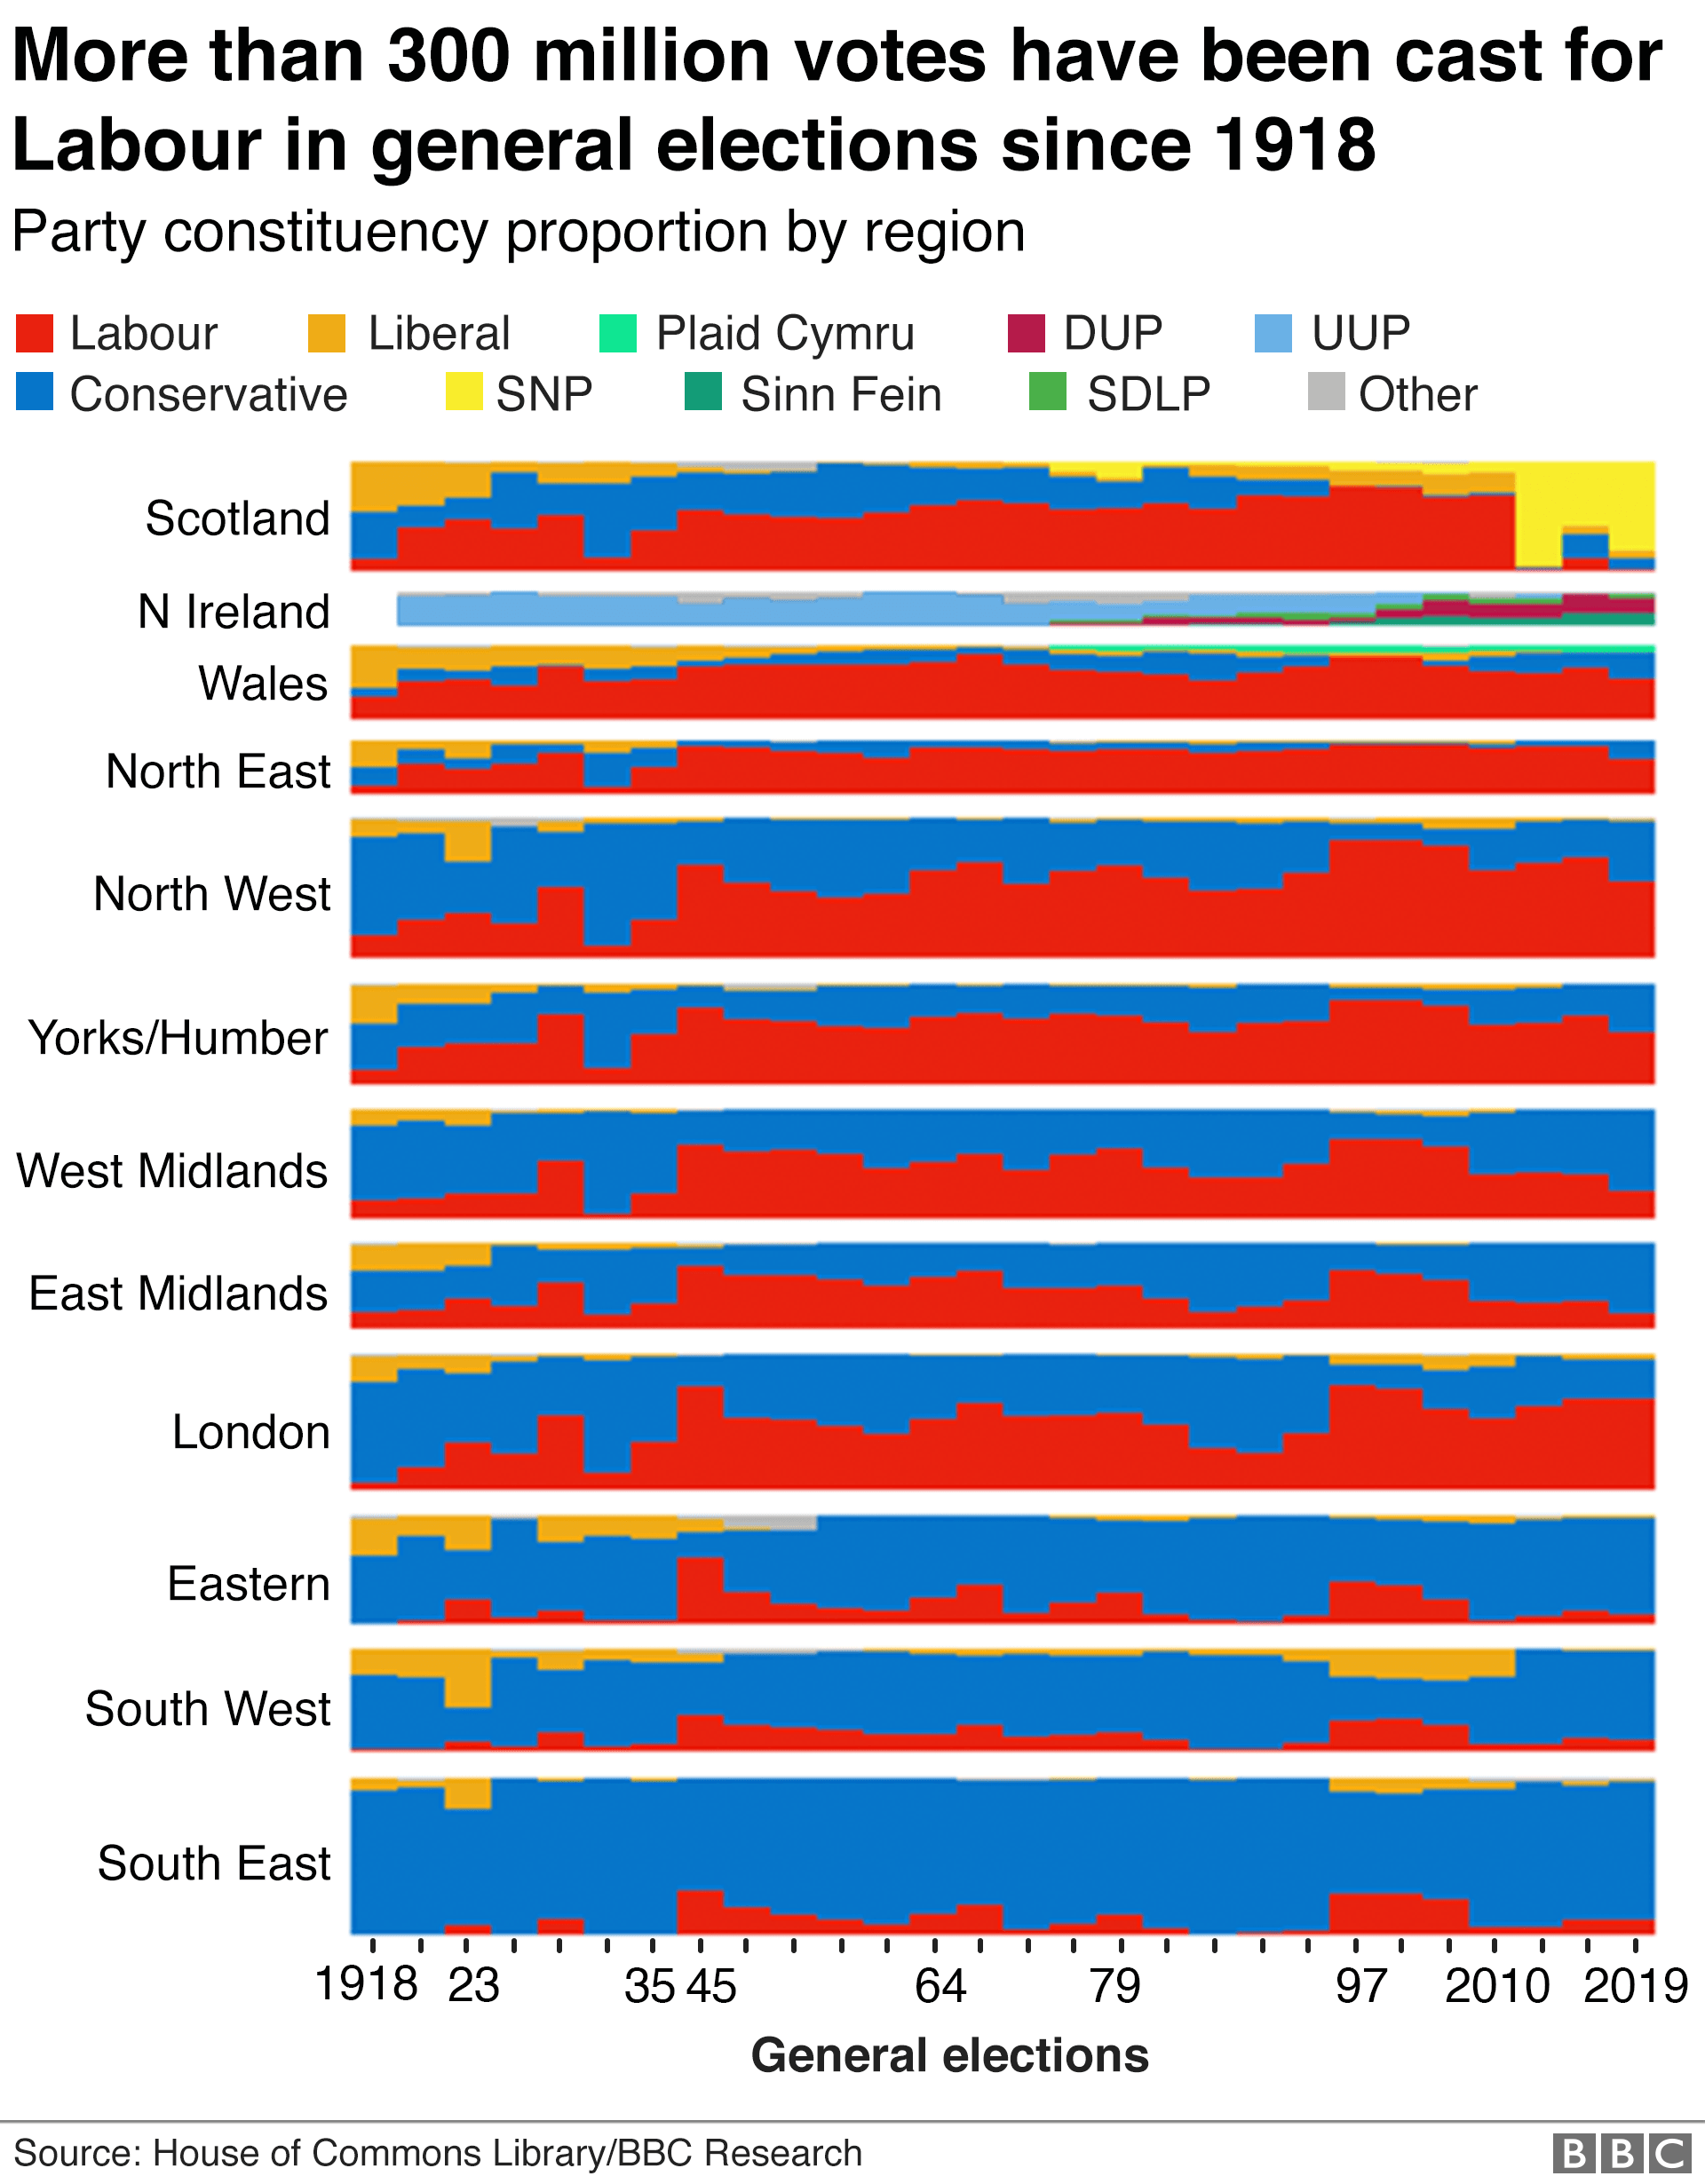 Chart showing general elections since 1918